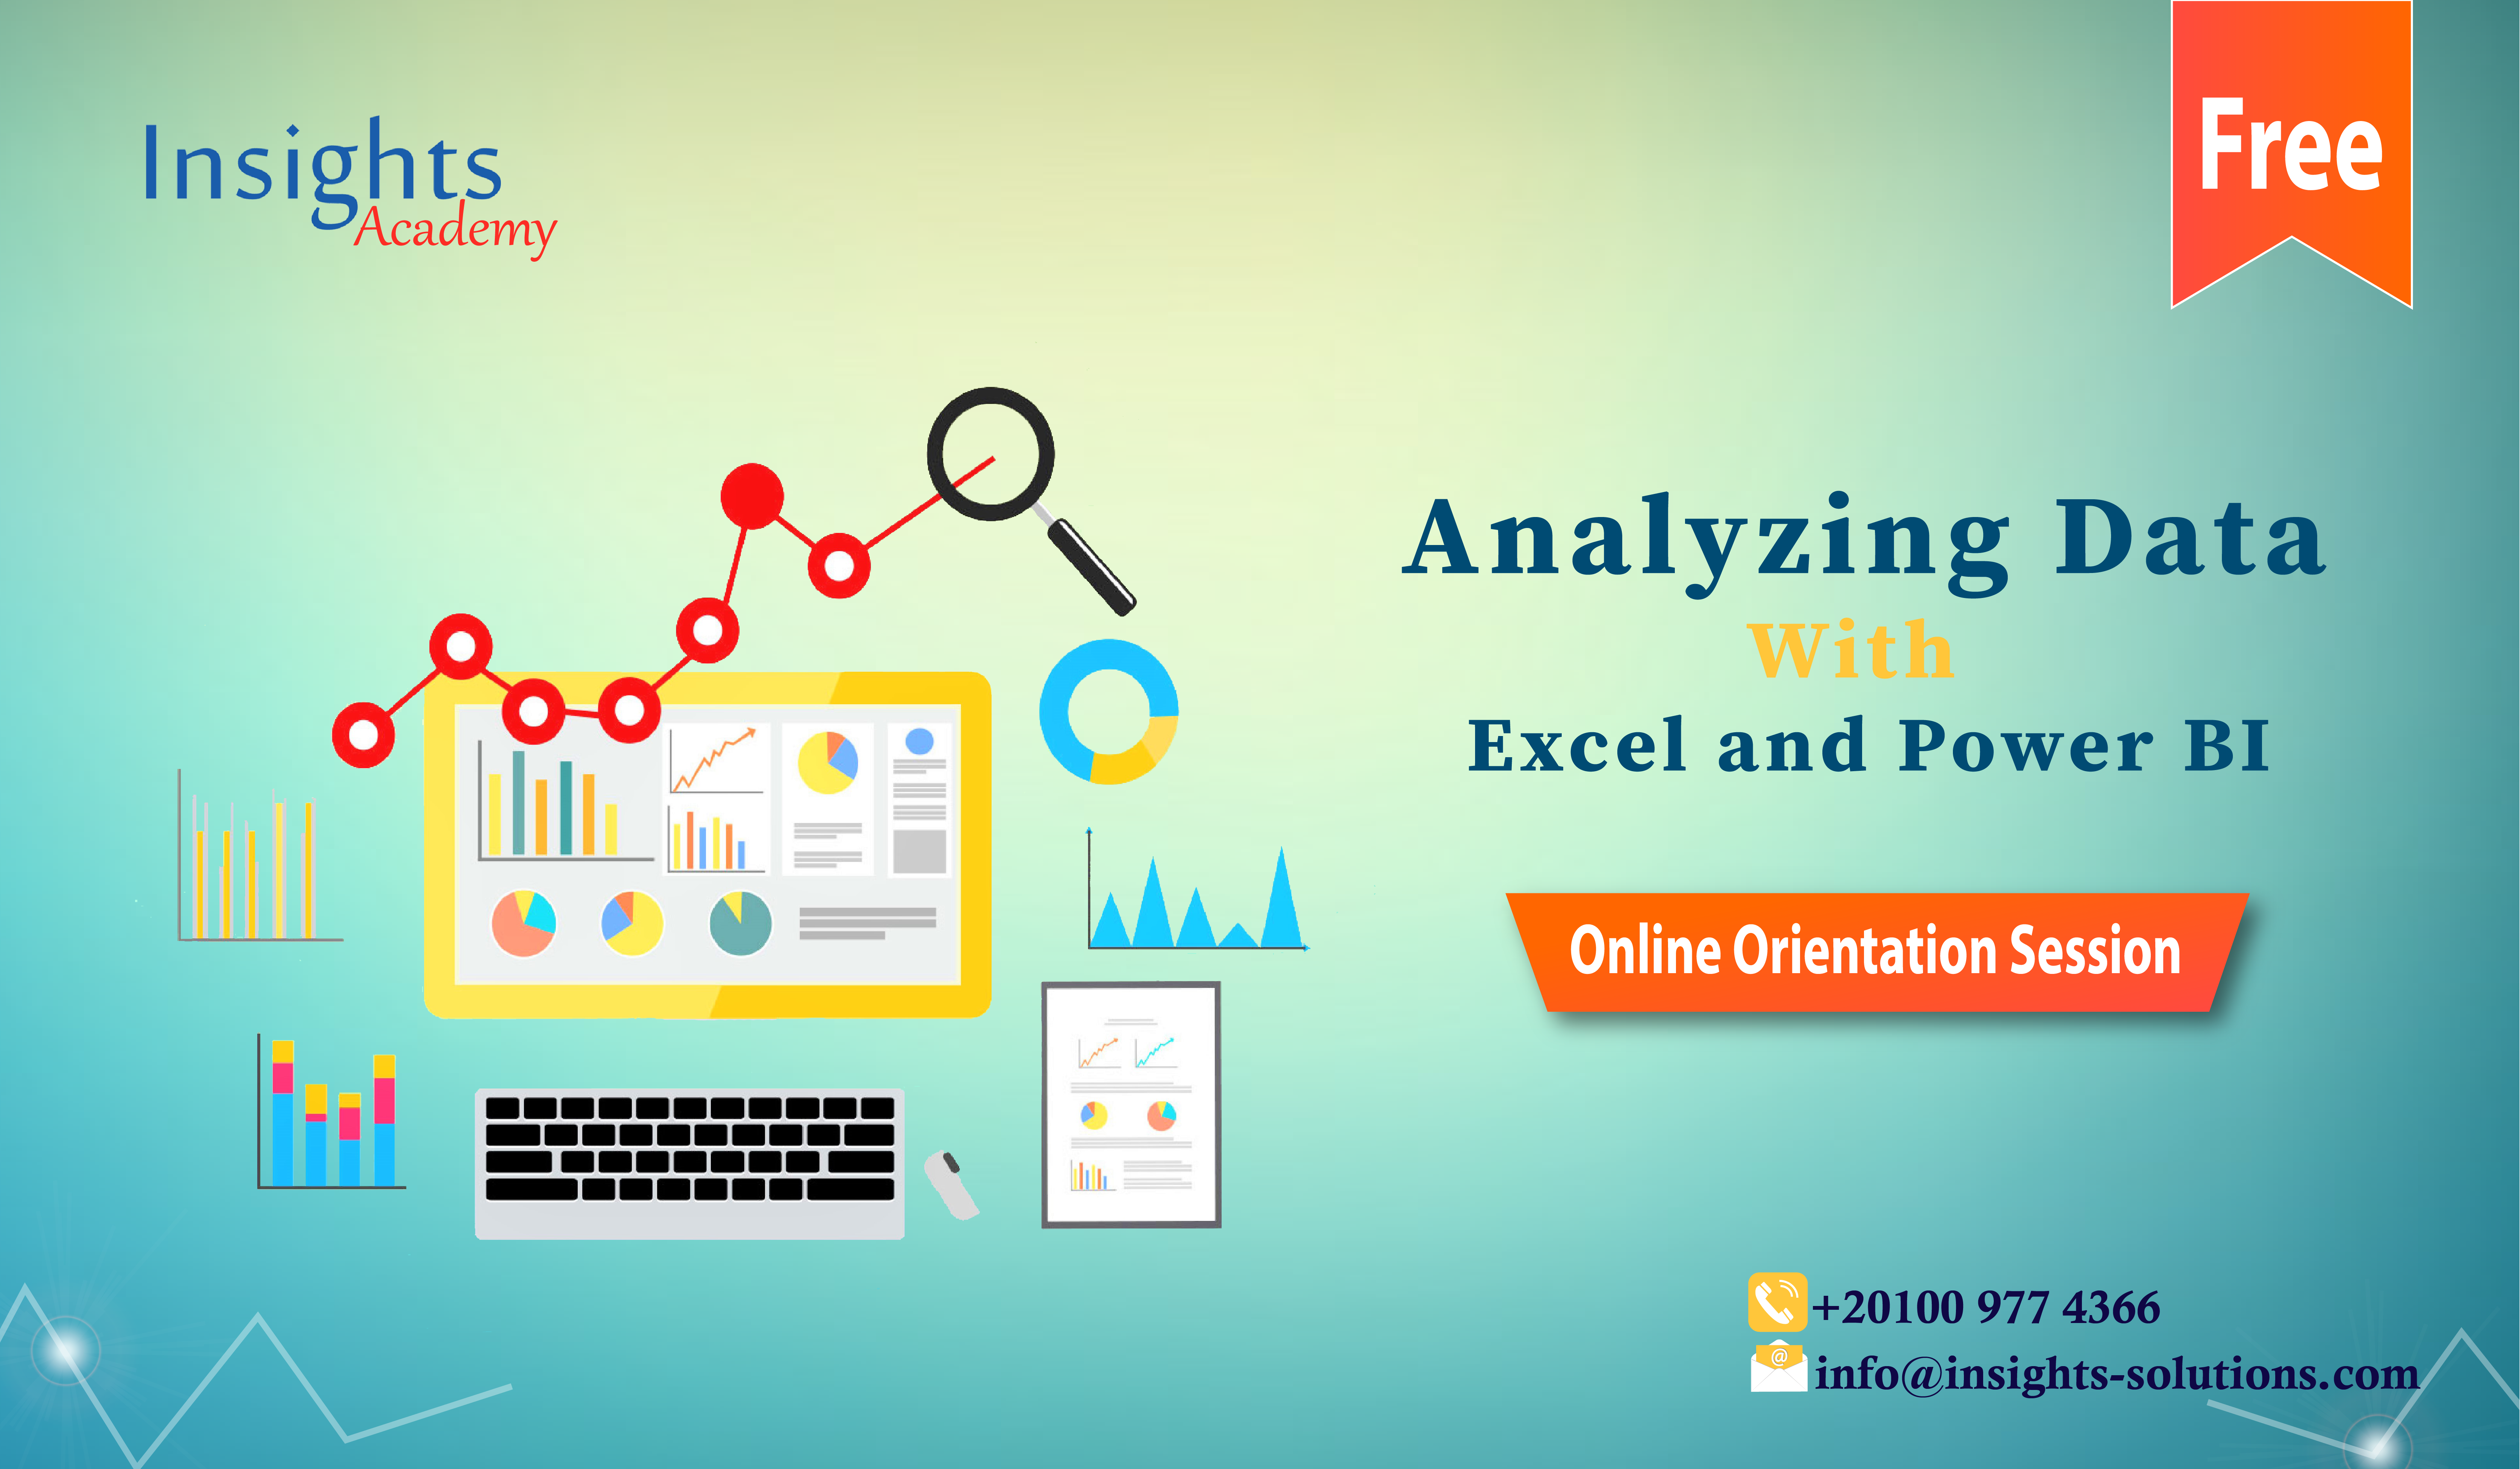 Analyzing Data with Excel and Power BI Track (Free Orientation Session) 2